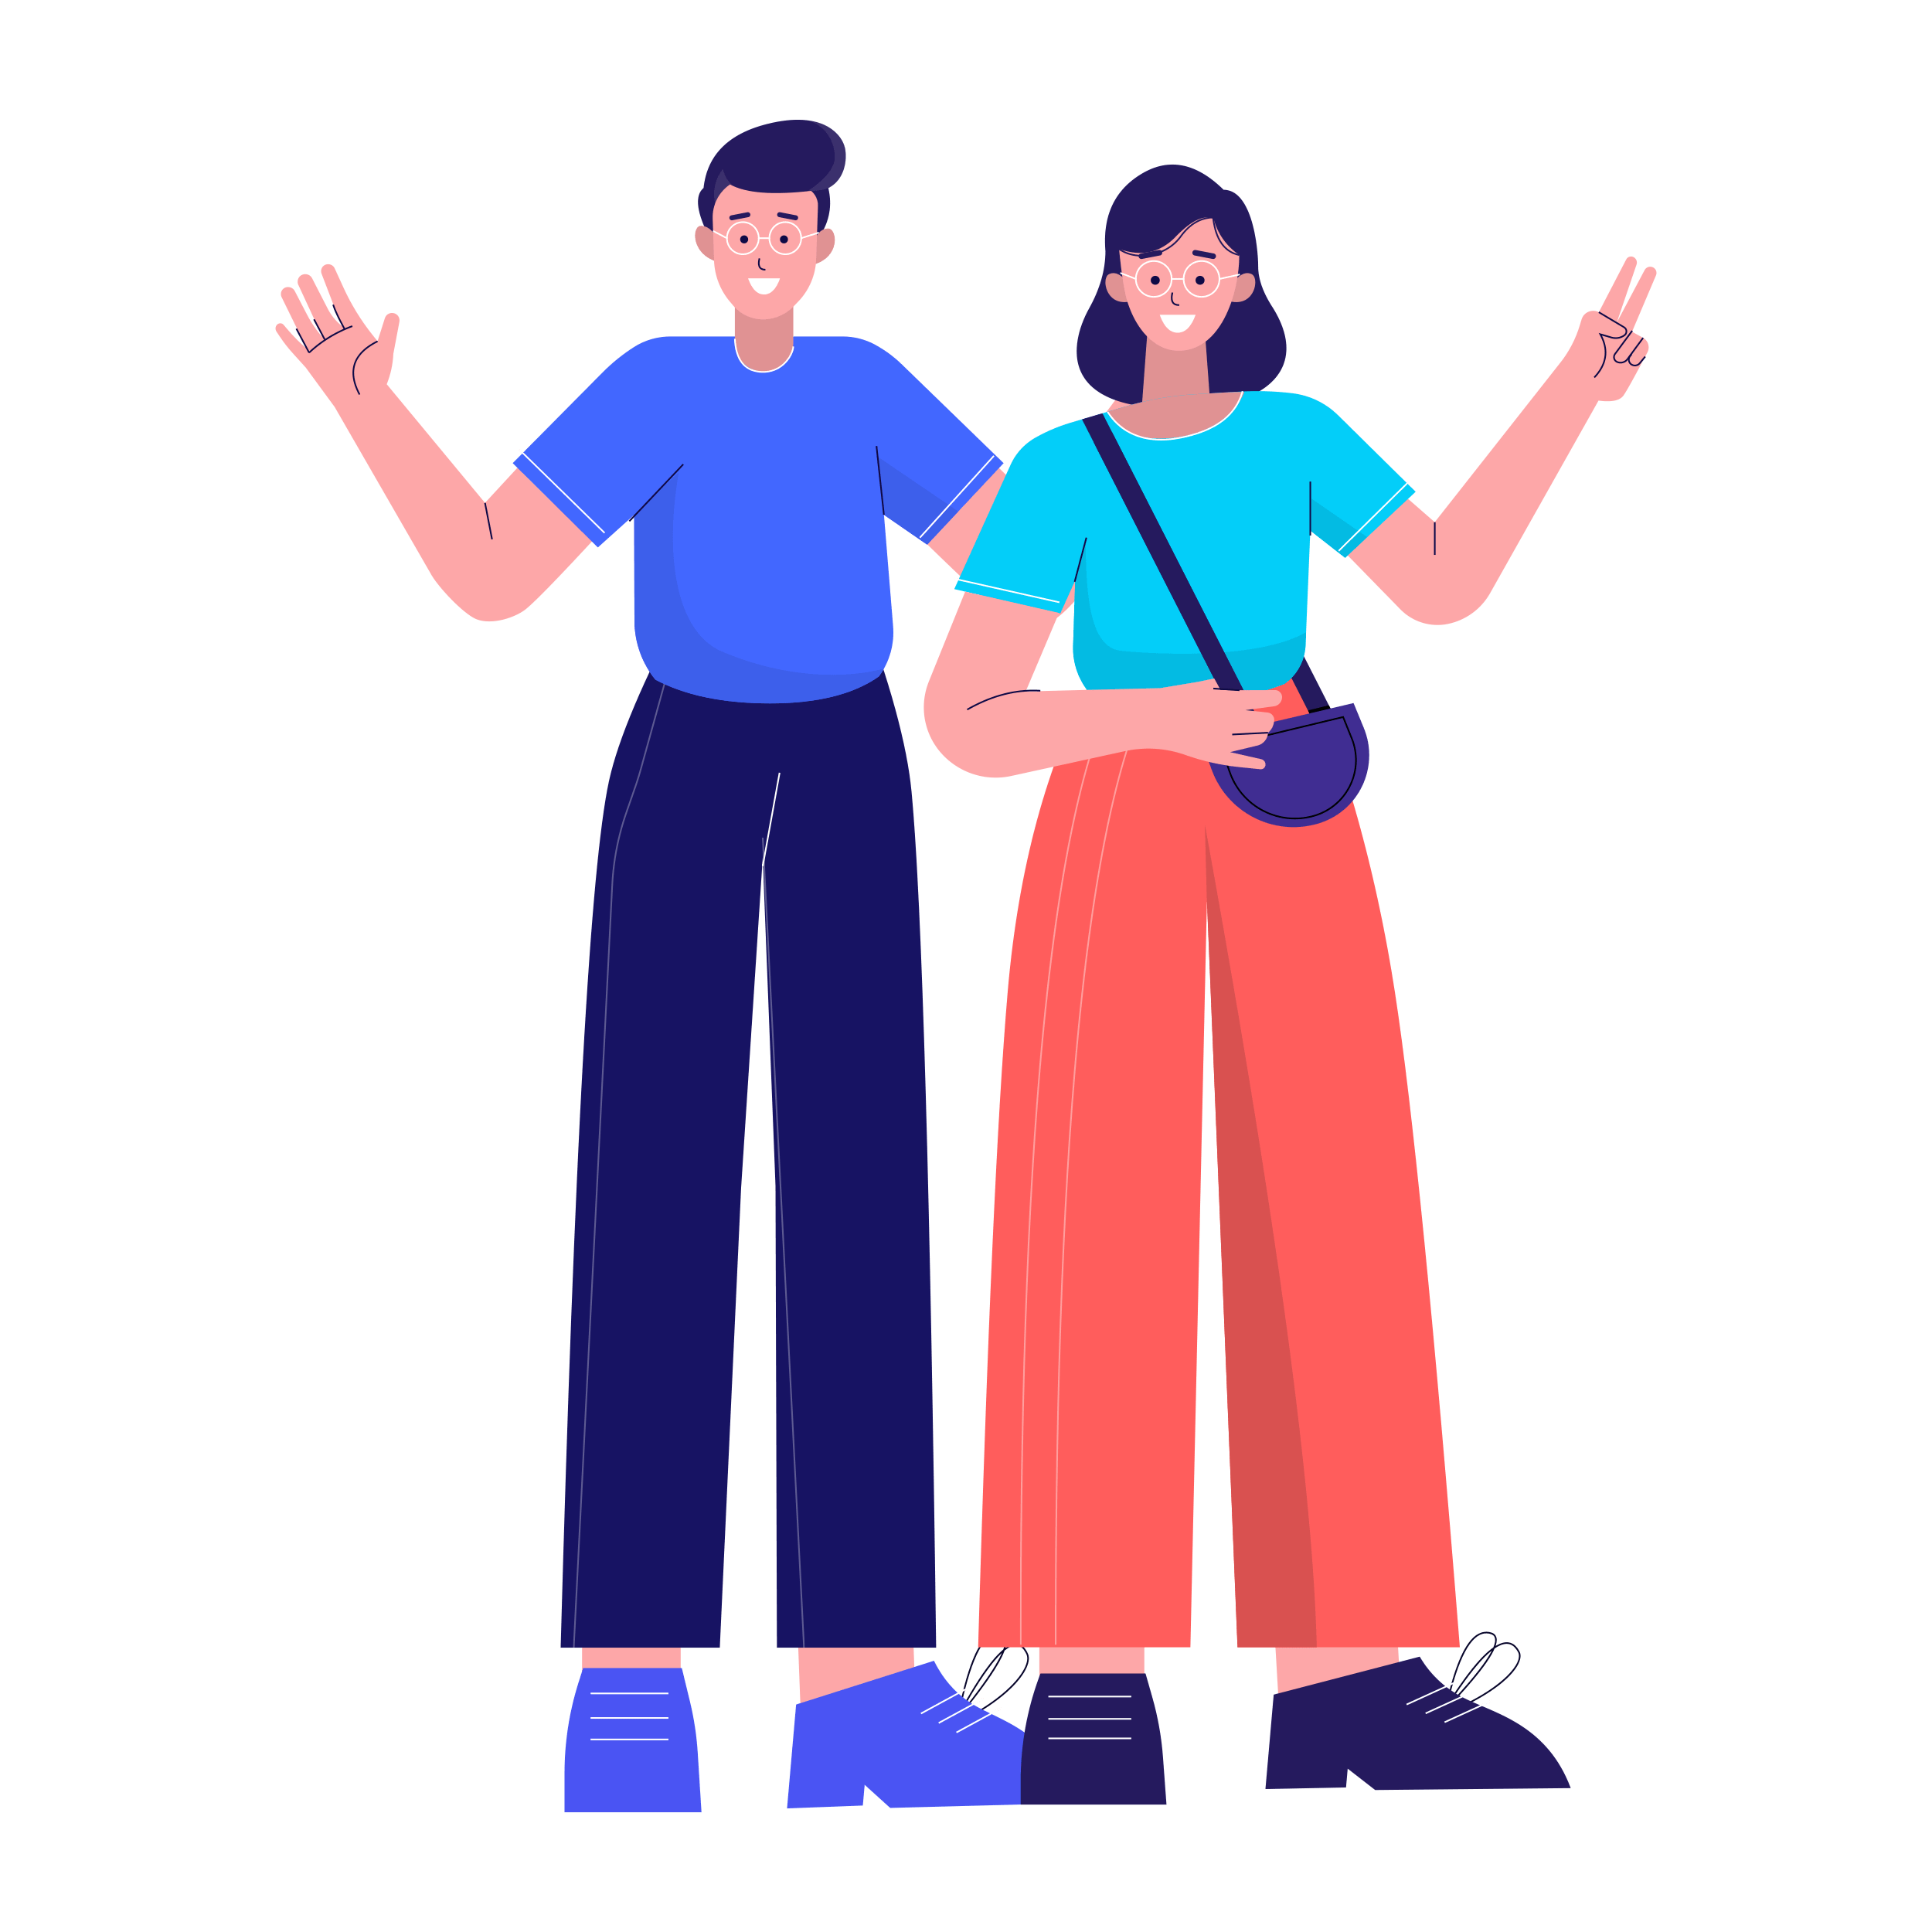 Illustration of a man and a woman